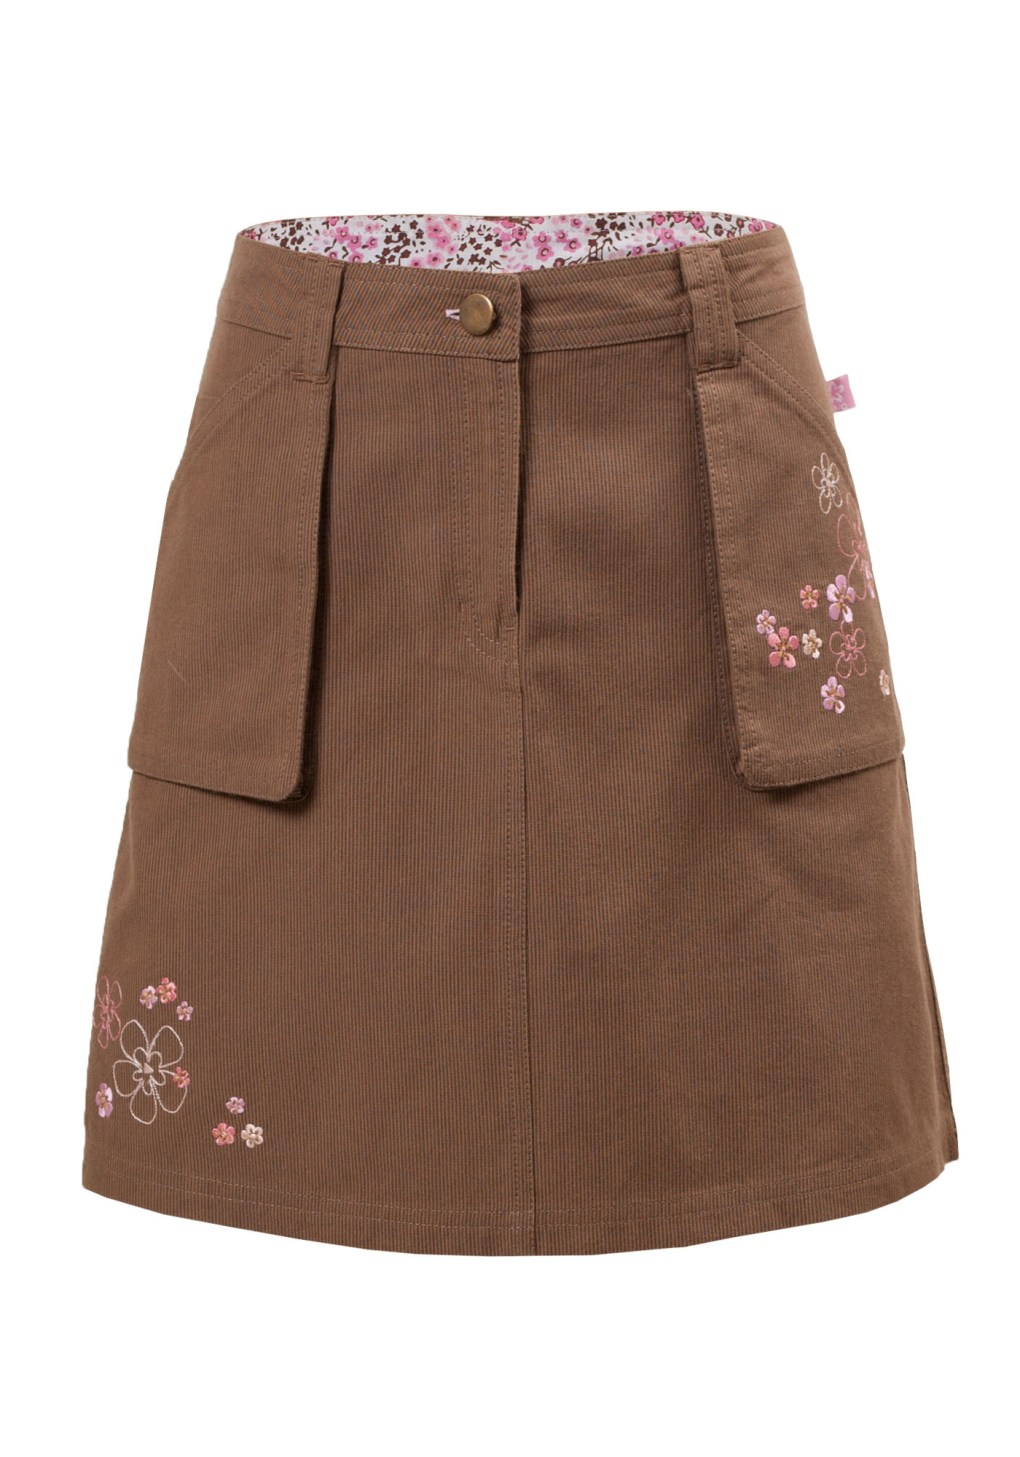 MINC Petite Autumn Fun Girls Embroidered Short Skirt in Brown Corduroy